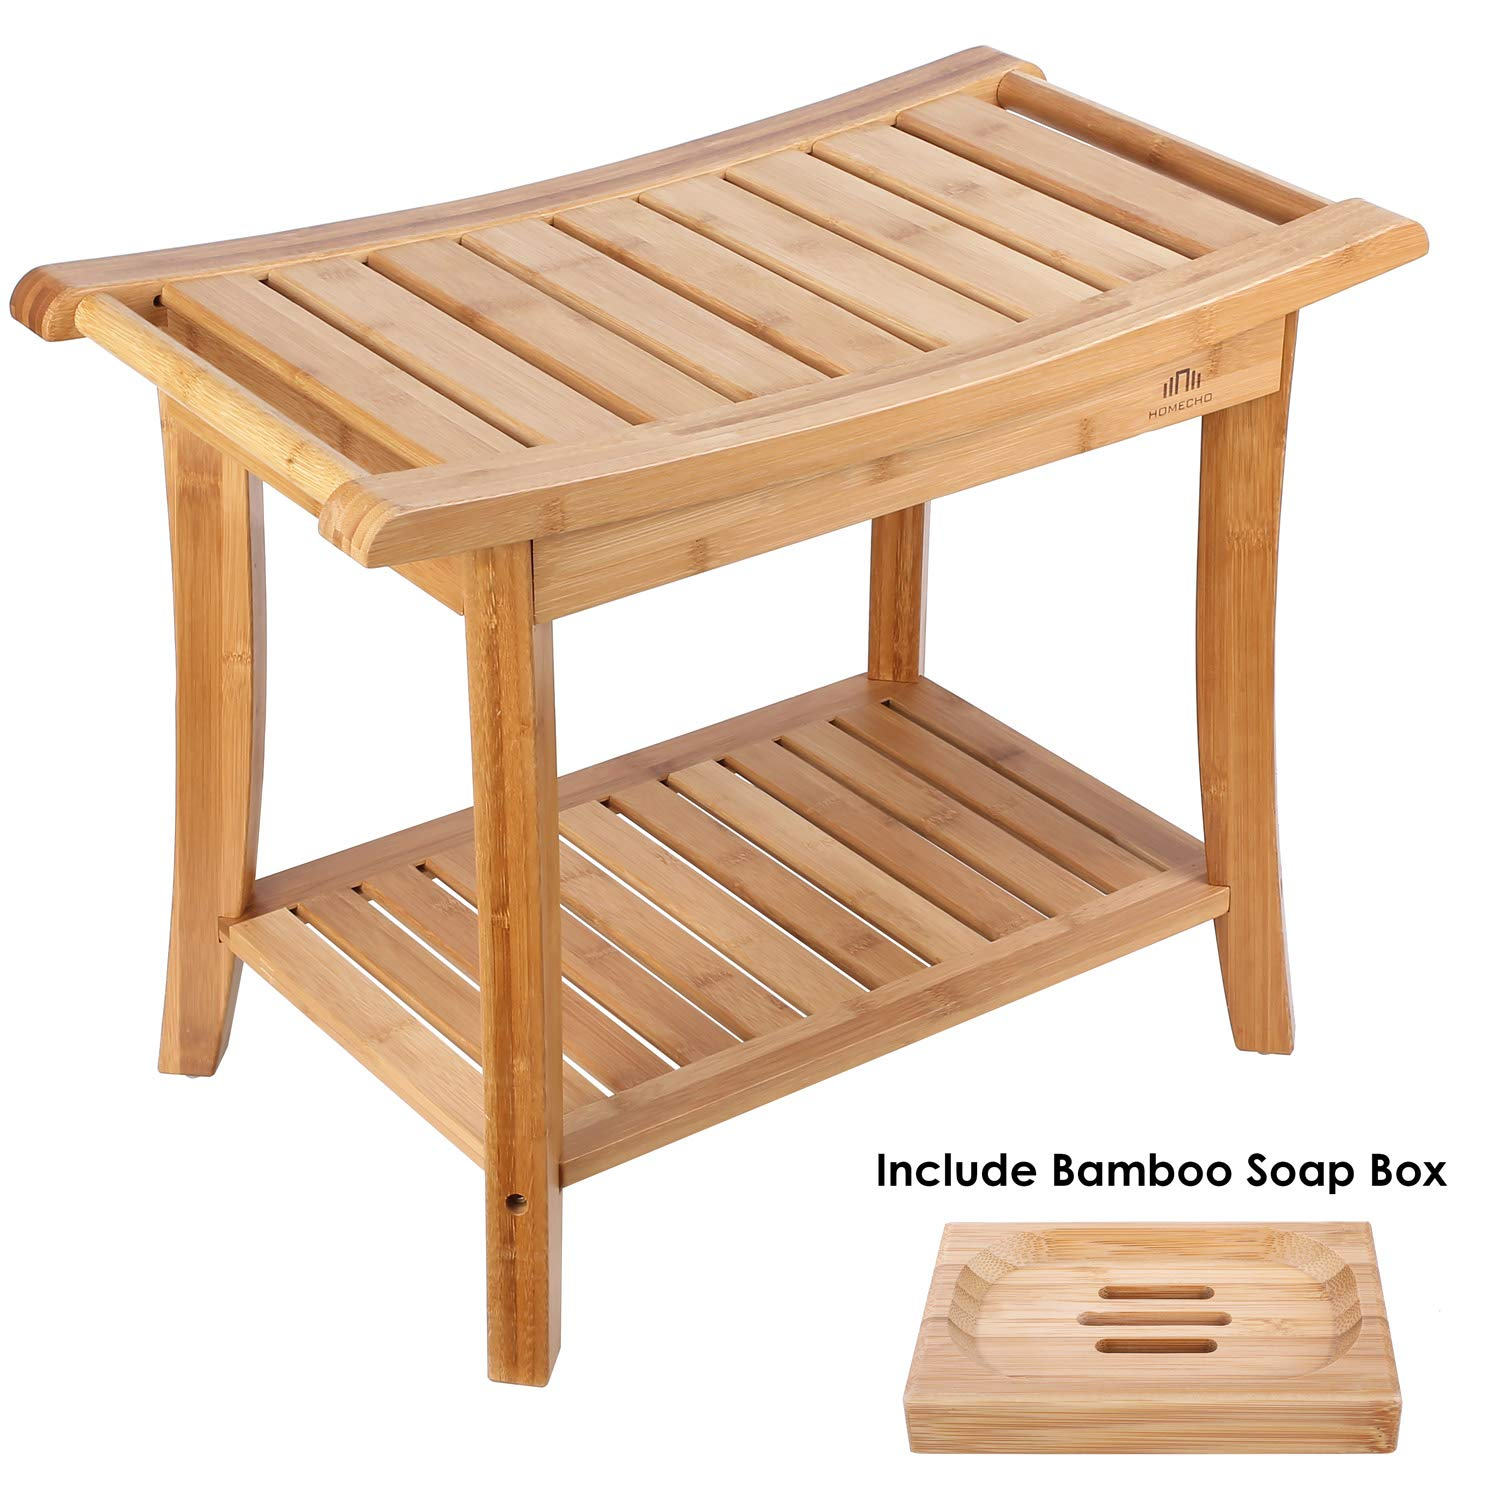 HOMECHO Bamboo Bath Shower Bench Seat Stool with 1 Soap Box for Spa Bathing and 2-Tier Storage Shelf with 2 Handles for Indoor and Outdoor HMC-BA-001